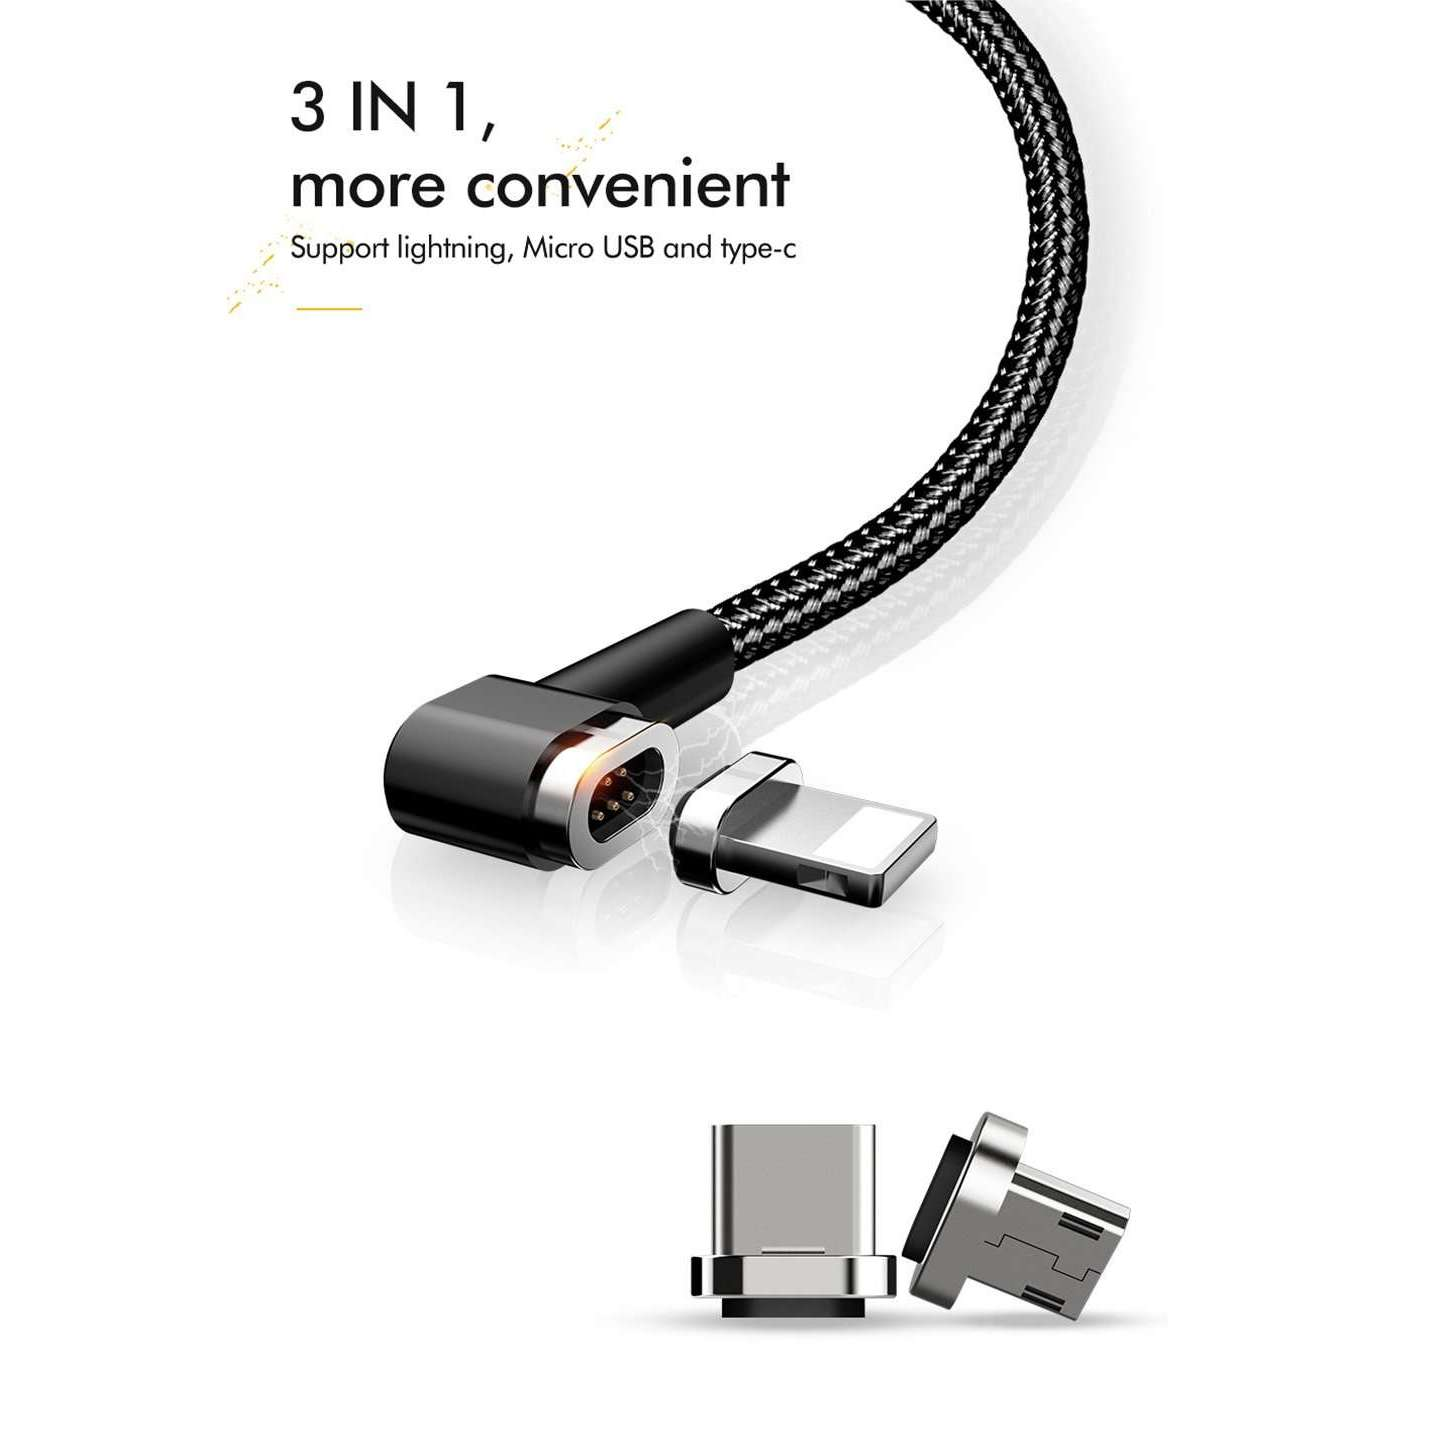 Mcdodo Magnetic Cable | 90degree | 3 in 1 | Lightning + Micro usb + Type-c | 1.2 m